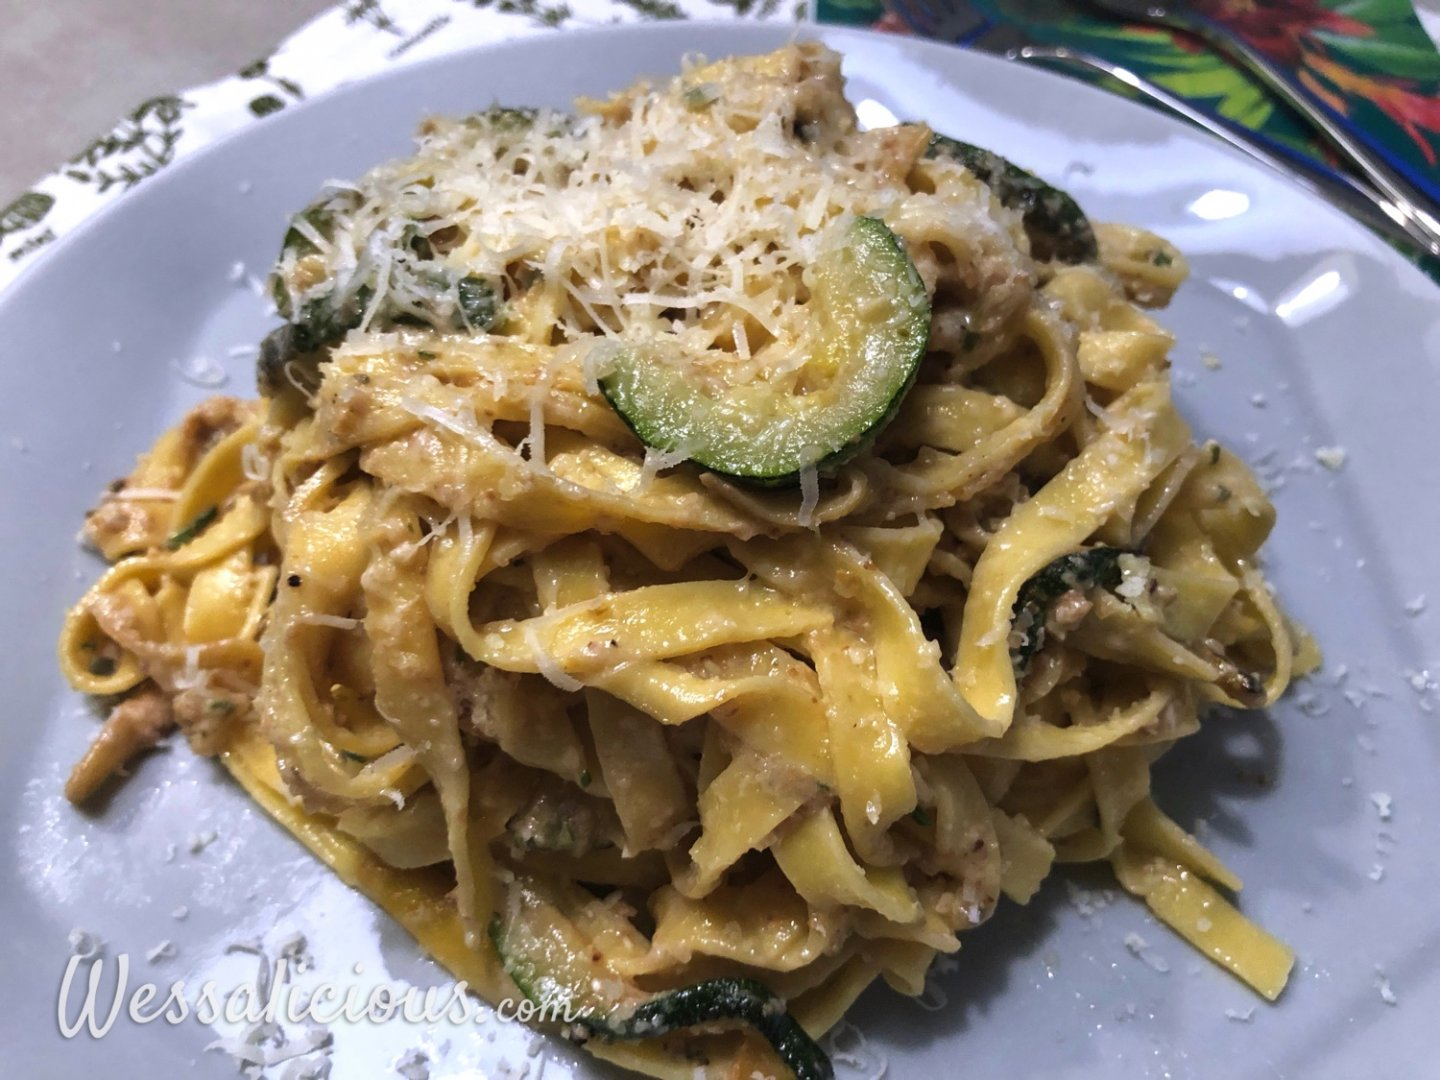 Pasta met walnoot-pesto